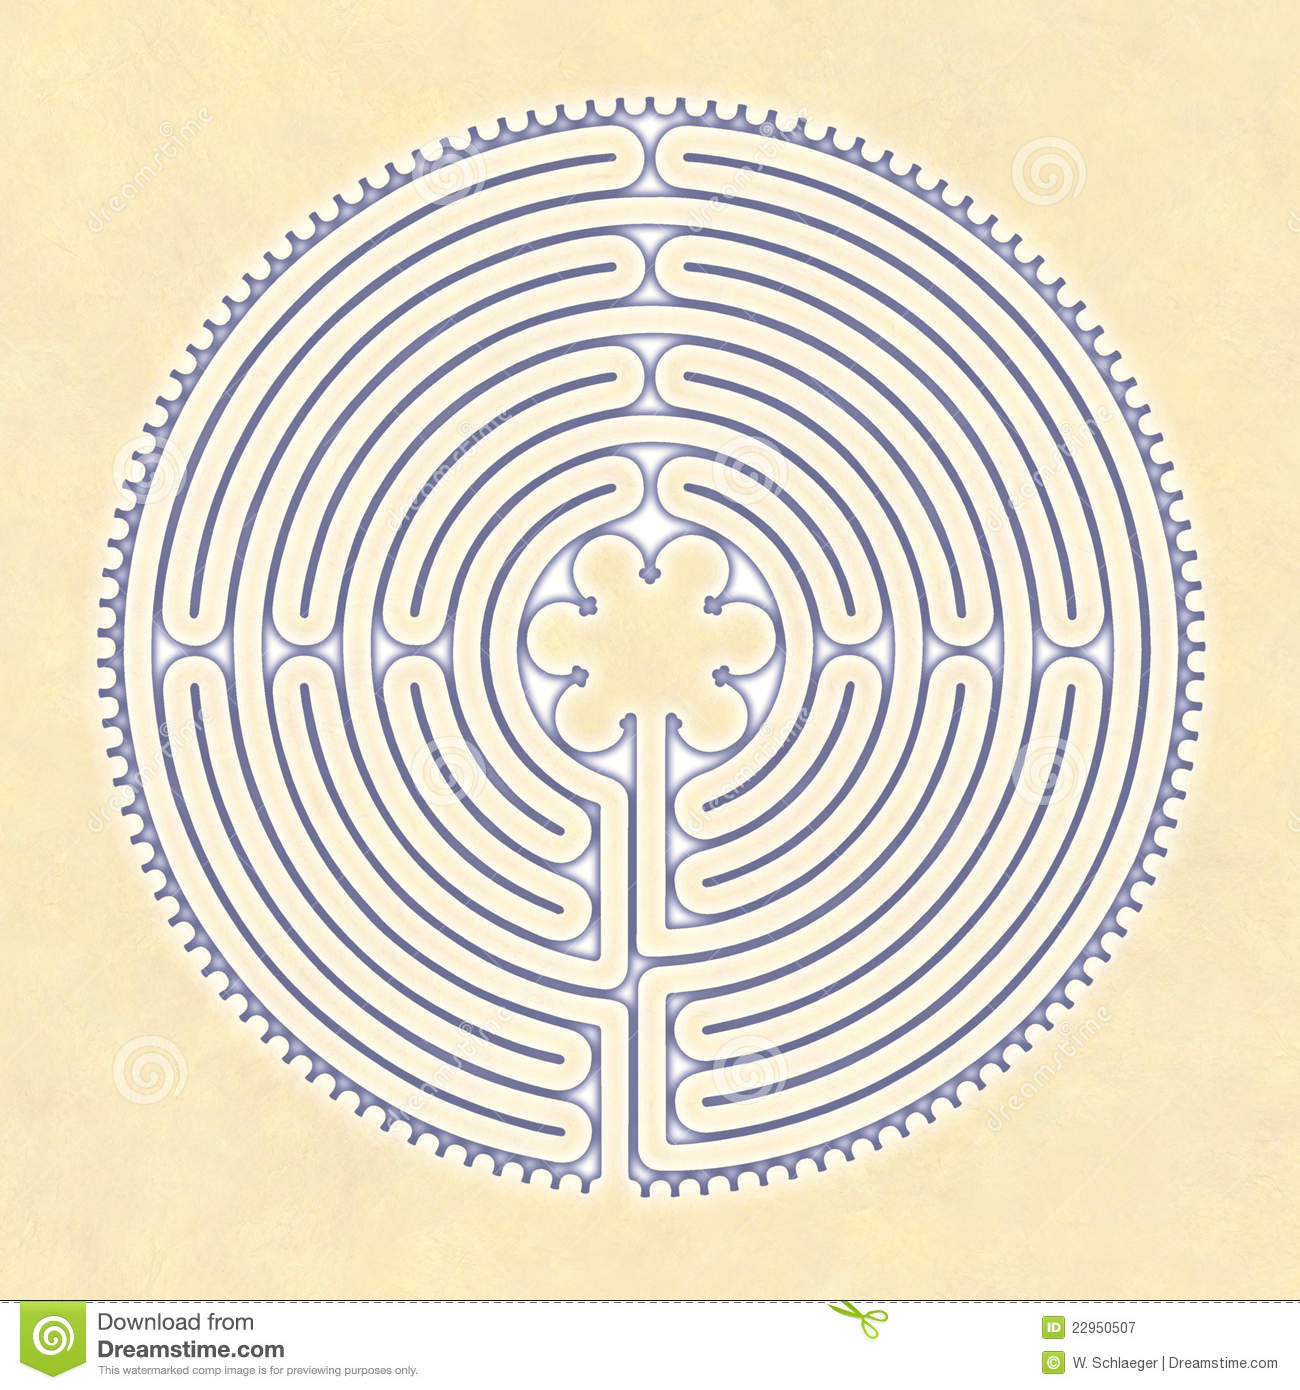 graphic about Finger Labyrinth Printable titled Chartres Labyrinth inventory impression. Graphic of religious, region